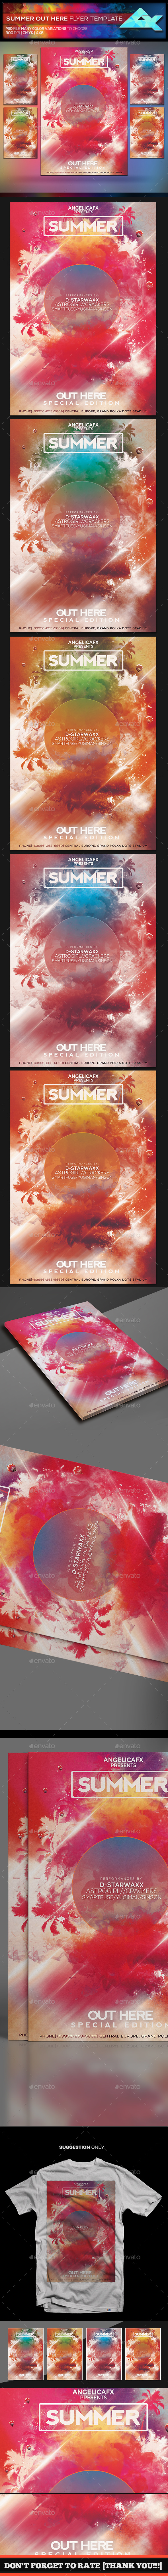 GraphicRiver Summer Out Here Flyer Template 20375497